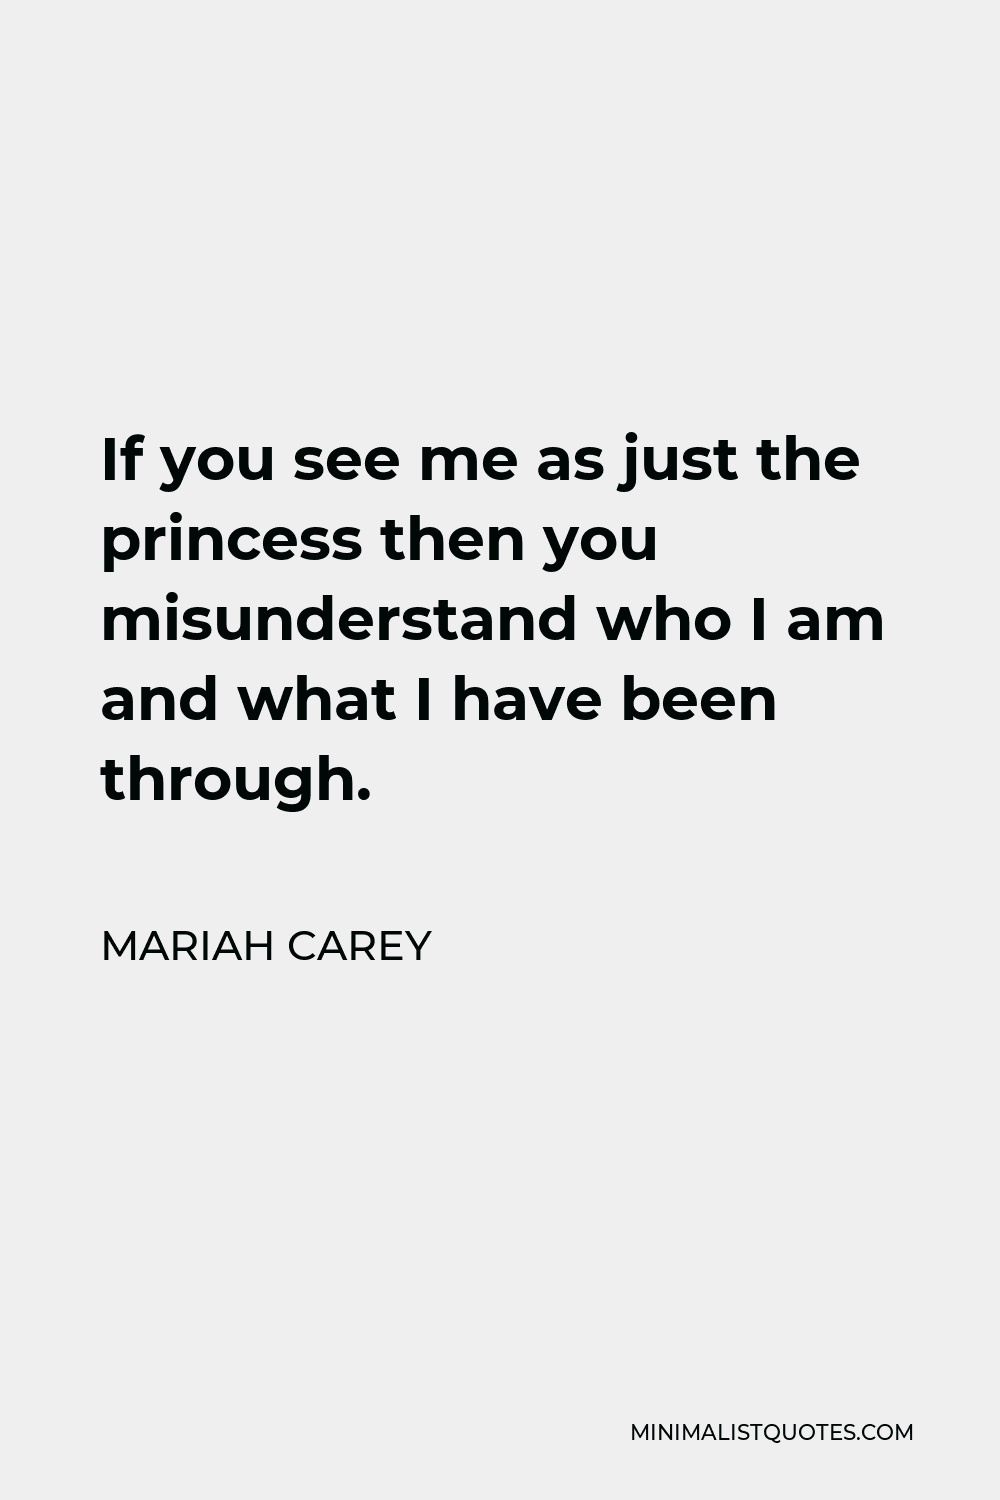 Mariah Carey Quote - If you see me as just the princess then you misunderstand who I am and what I have been through.